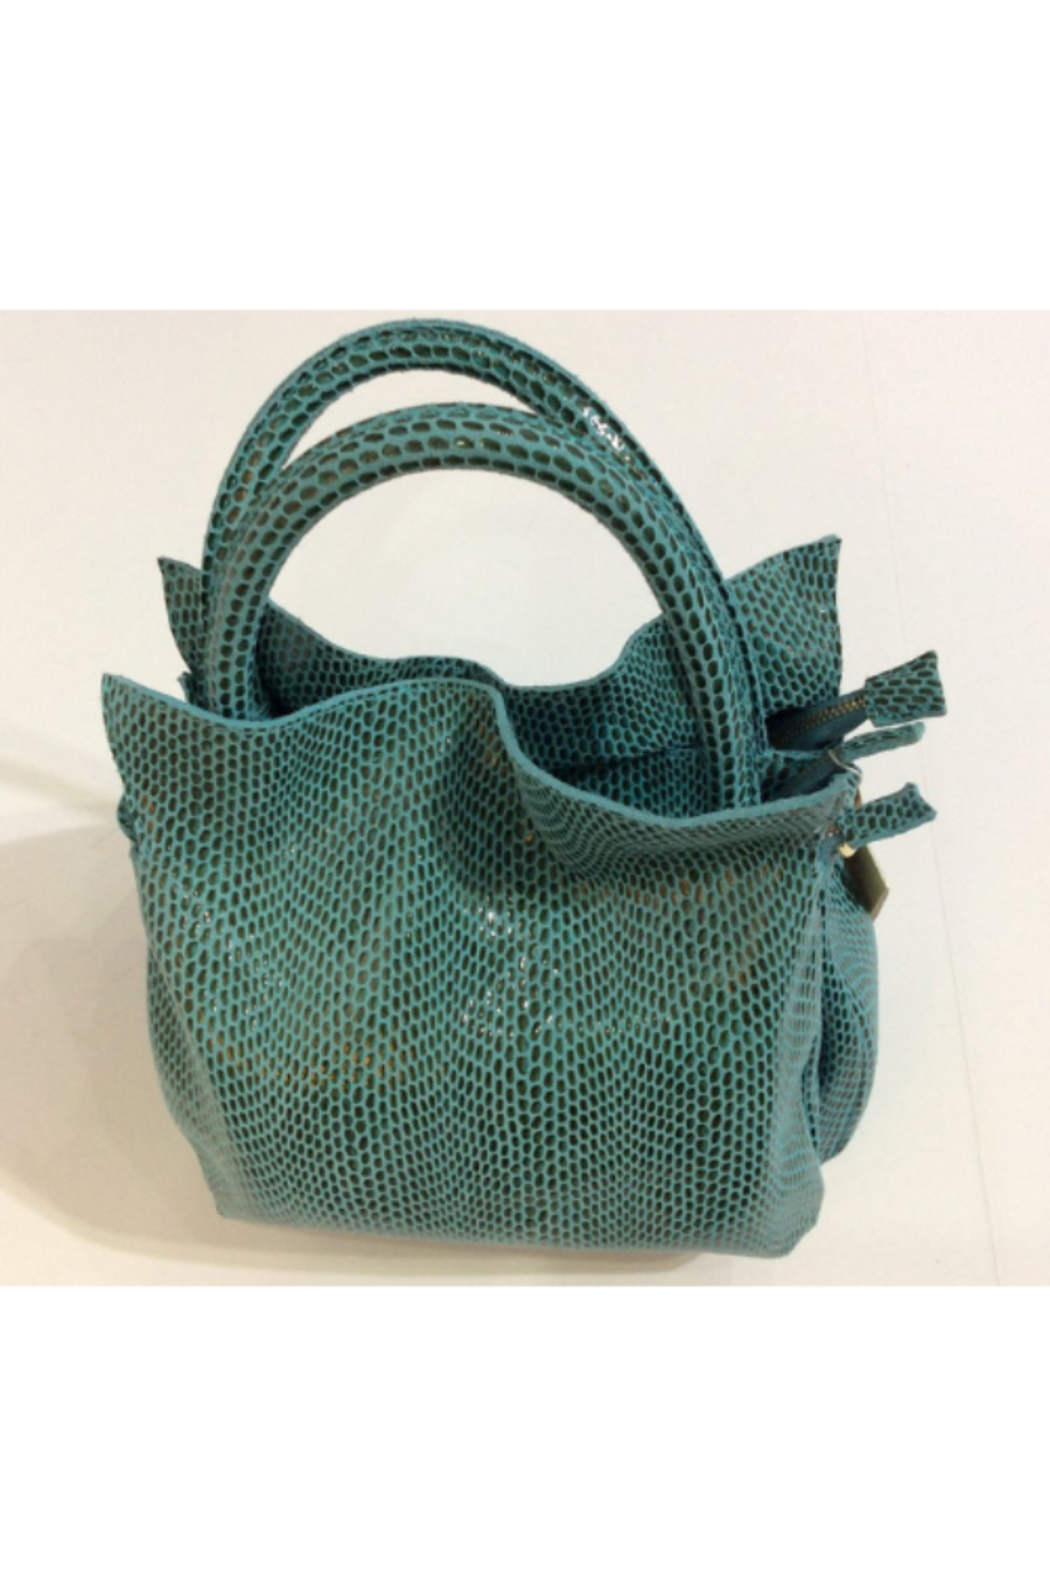 Giuliano Embossed teal and grey Italian leather purse in faux reptile pattern - Main Image